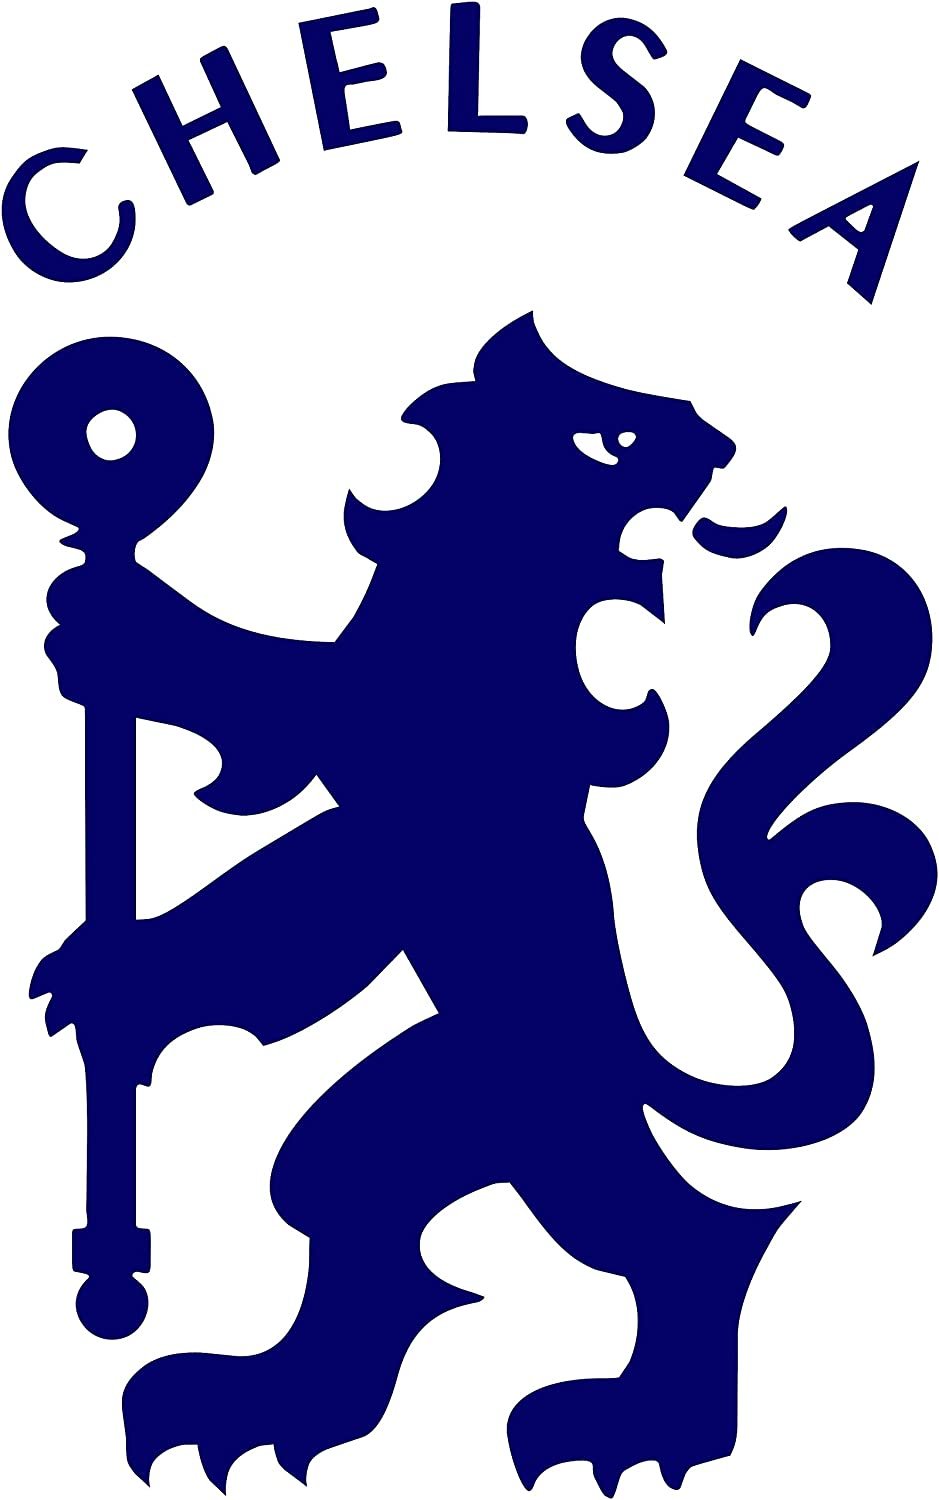 Chelsea Football Club Lion Decal Sticker for Car Laptop Wall Blue 6""